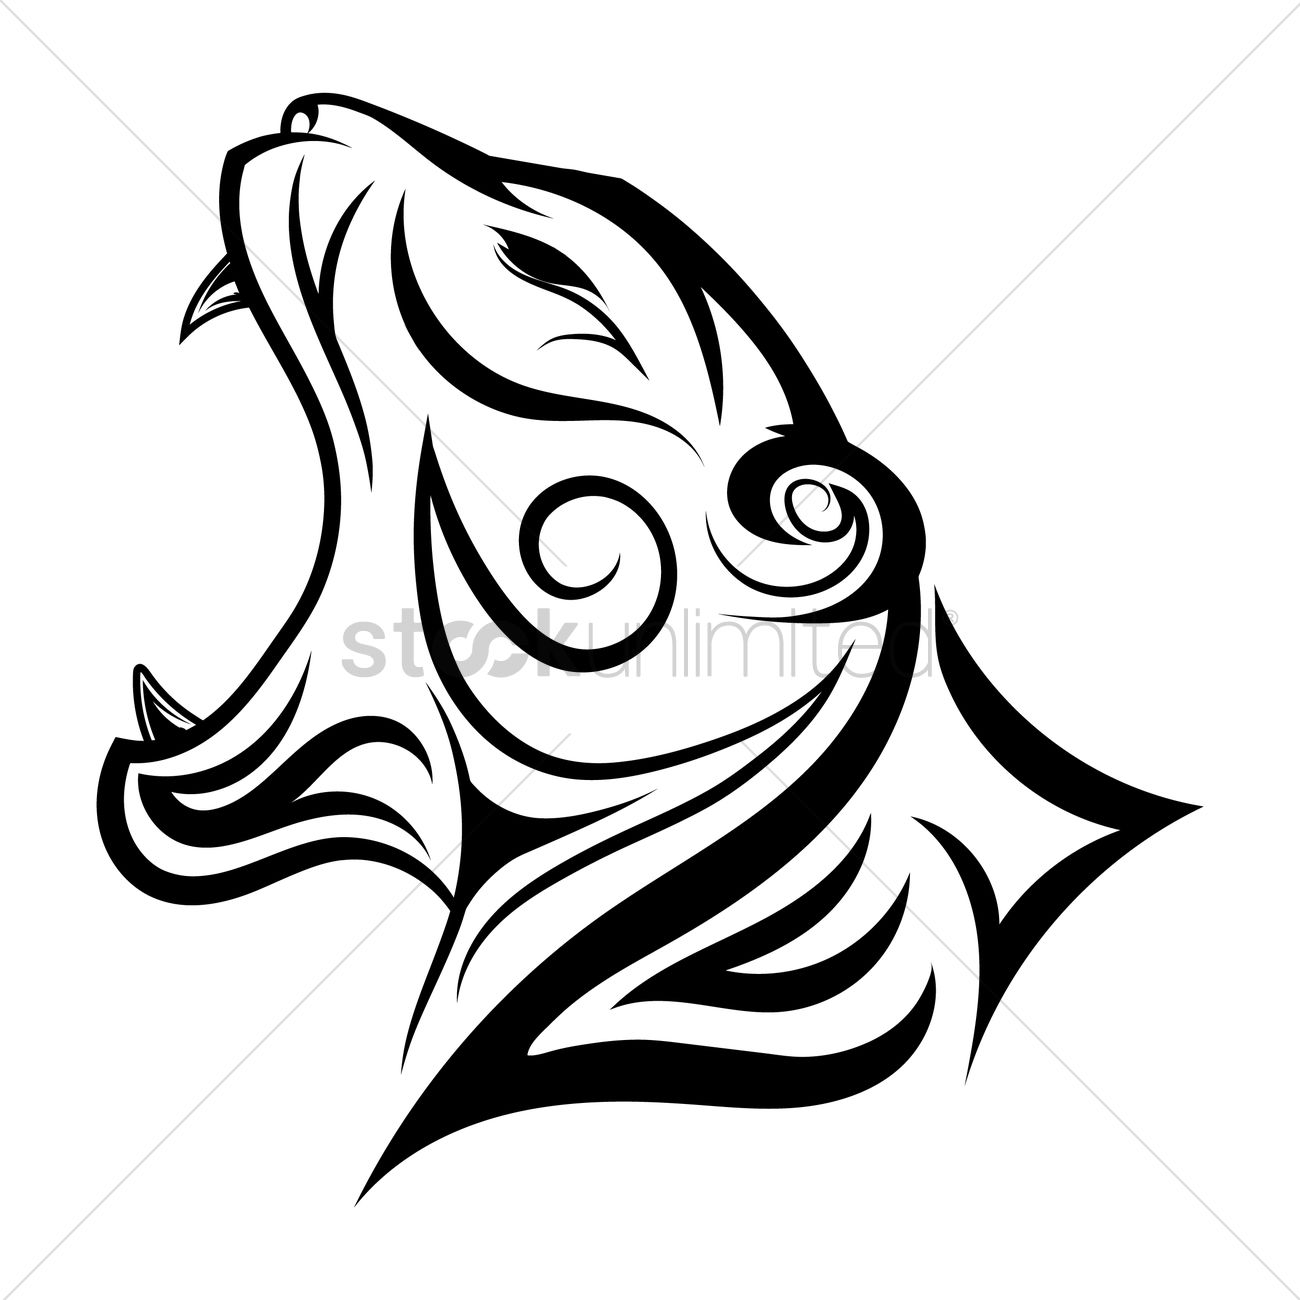 Tiger face tattoo Vector Image - 1457481 | StockUnlimited